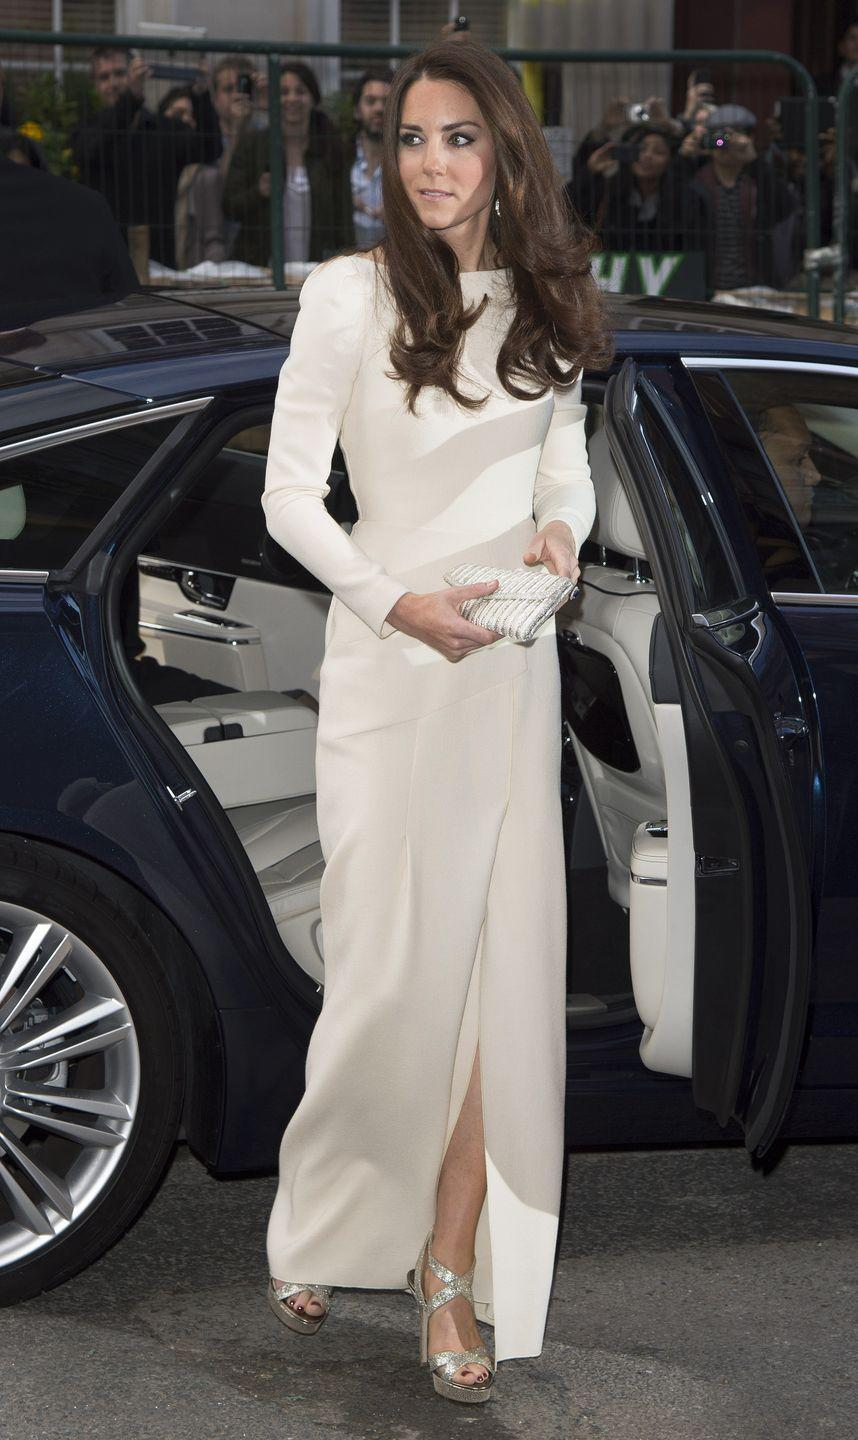 """<p>Back in 2012, Kate stepped out looking gorg for a dinner in London. While some of us were obsessed with her outfit, other fans noticed her choice of dark nail polish. At the time, the plum color was seen as breaking royal protocol. Fast forward to now, where royal reporter <a href=""""https://twitter.com/scobie"""" rel=""""nofollow noopener"""" target=""""_blank"""" data-ylk=""""slk:Omid Scobie"""" class=""""link rapid-noclick-resp"""">Omid Scobie</a> told <em><a href=""""https://www.harpersbazaar.com/celebrity/latest/a25462630/meghan-markle-dark-nail-polish-british-fashion-awards-royal-protocol/"""" rel=""""nofollow noopener"""" target=""""_blank"""" data-ylk=""""slk:Harper's Baazar"""" class=""""link rapid-noclick-resp"""">Harper's Baazar</a></em> recently there's actually no protocol on polish. Cool! </p>"""